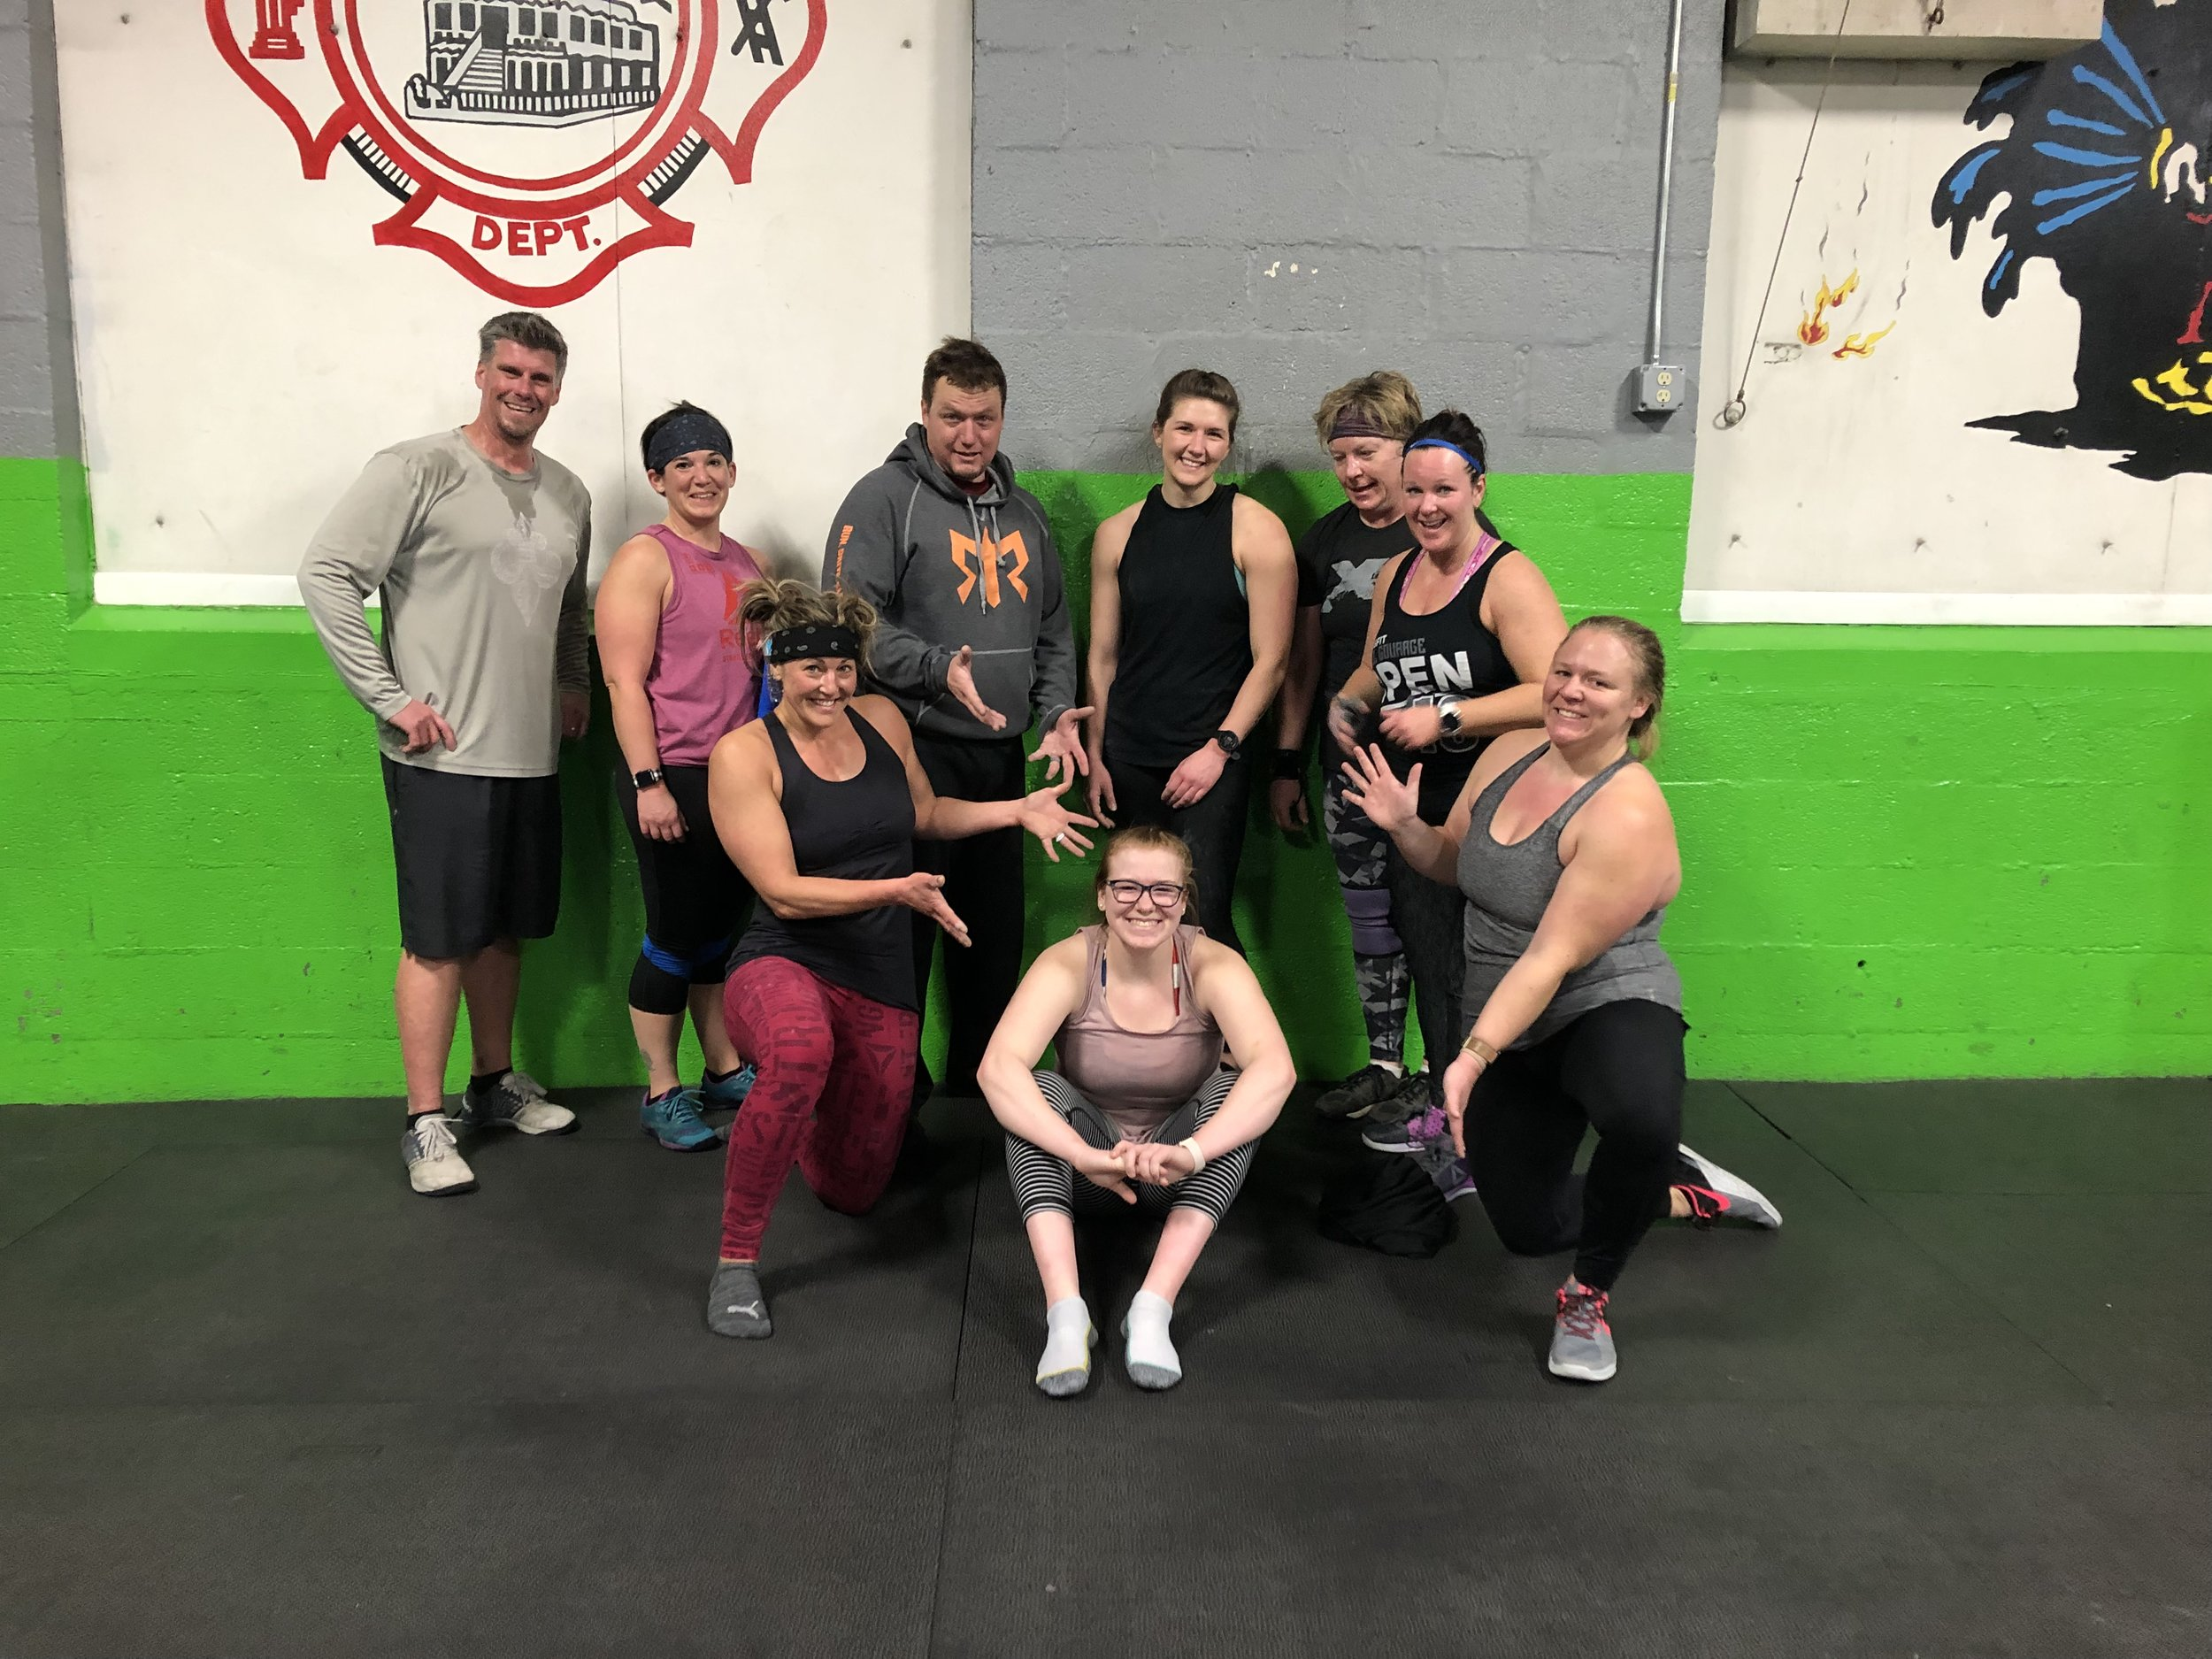 Class Times 5:15/8:30 & 6:00  Skill Muscle Up Progressions     MOD - EMOM 10  Odd ~ 6 TNG DL  Even - 8 Box Jumps 24/30     Wod: 15 AMRAP  30 DU  10 Thrusters 65/95  30 DU  10 SDHP 65/95